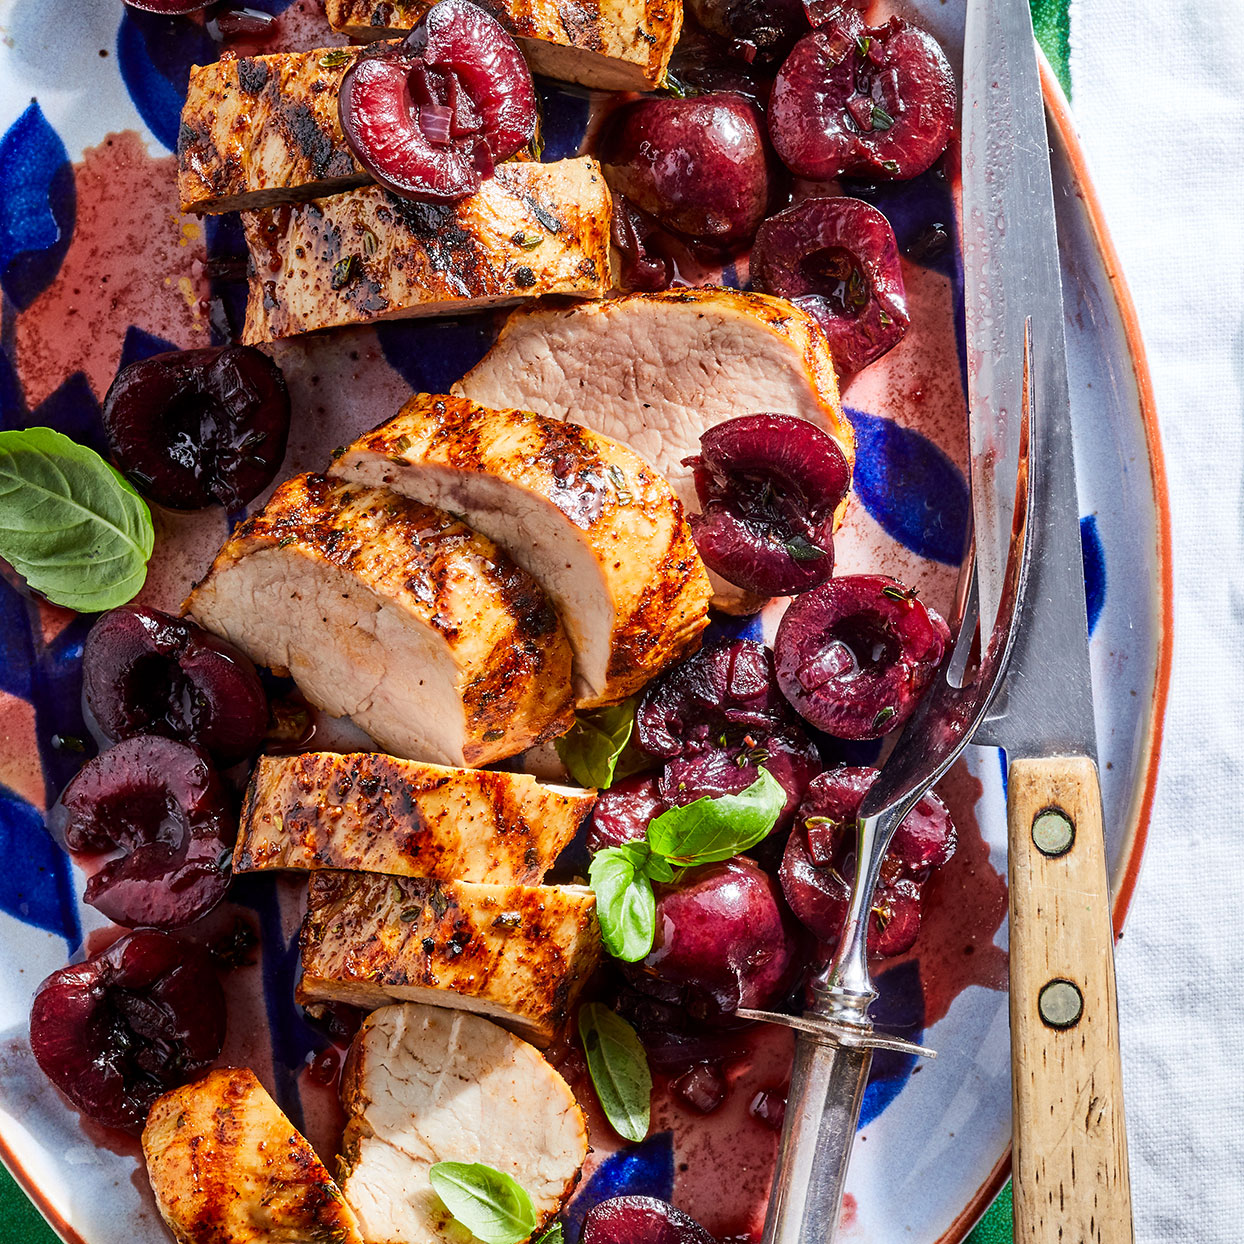 Grilling pork tenderloin is a delicious, smoky way to bring out the flavor of the meat. While you have the grill on, cook some green beans in a grill basket to serve alongside this juicy dish. Source: EatingWell Magazine, June 2020